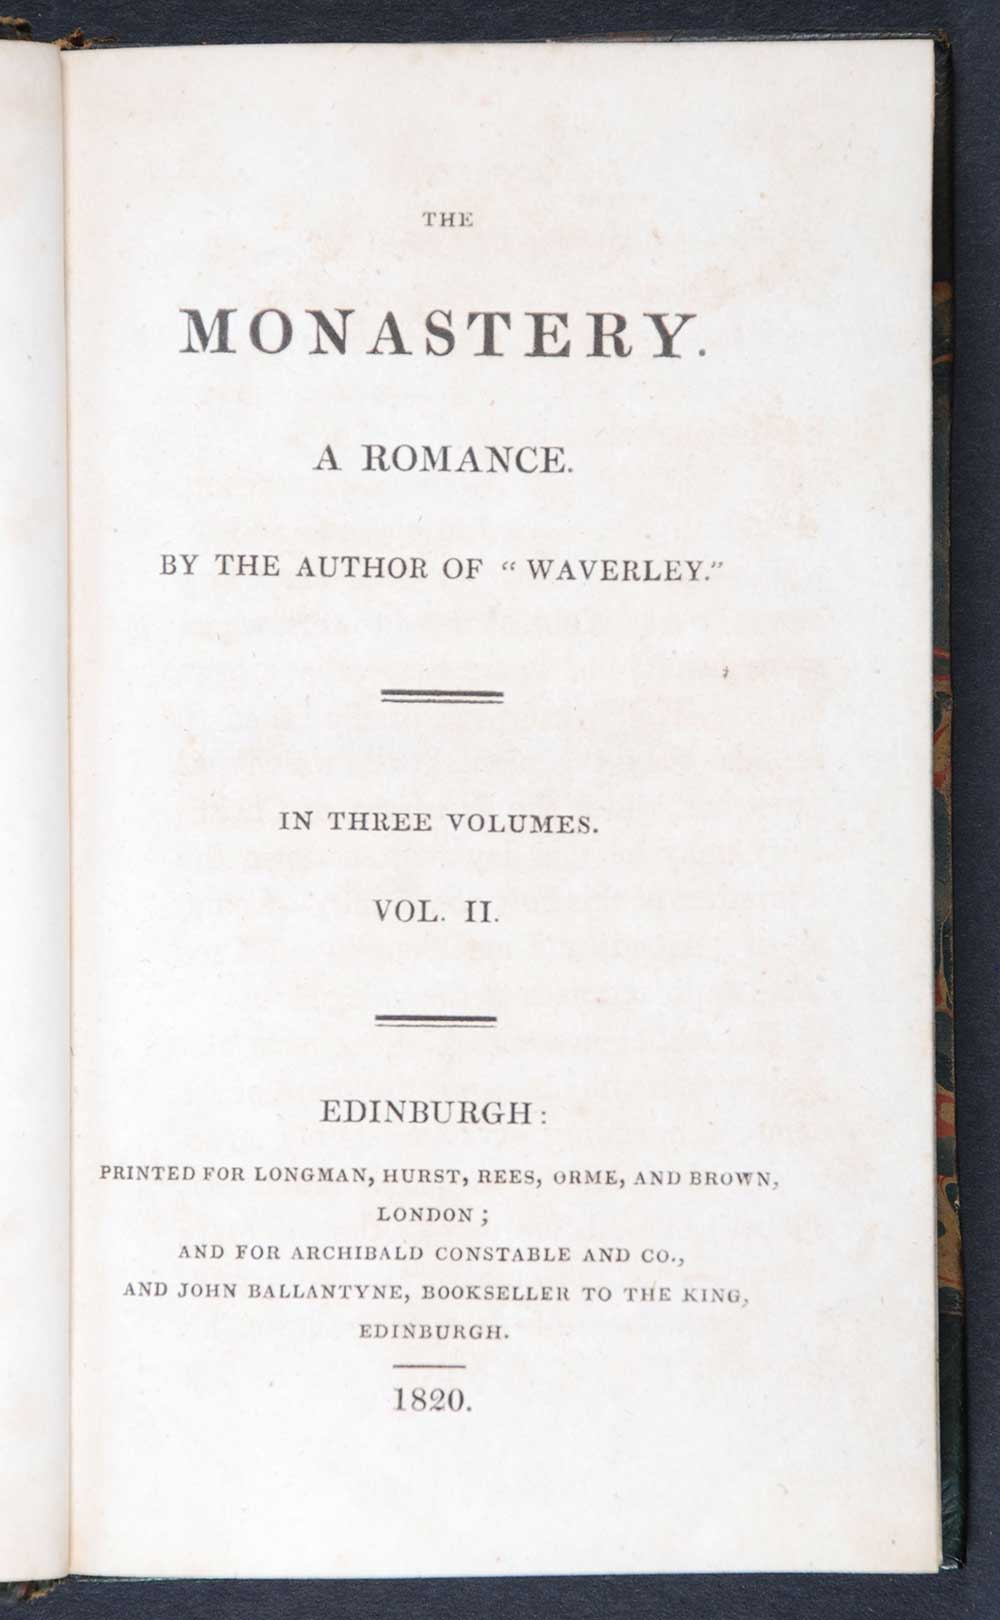 [Sir Walter Scott]. <em>The monastery: a romance.</em> [1st edition]. Edinburgh: Printed for Longman, Hurst, Rees, Orme and Brown, London; and for Archibald Constable and Company, and John Ballantyne, Edinburgh, 1820. Three volumes; Vol. 2 displayed.